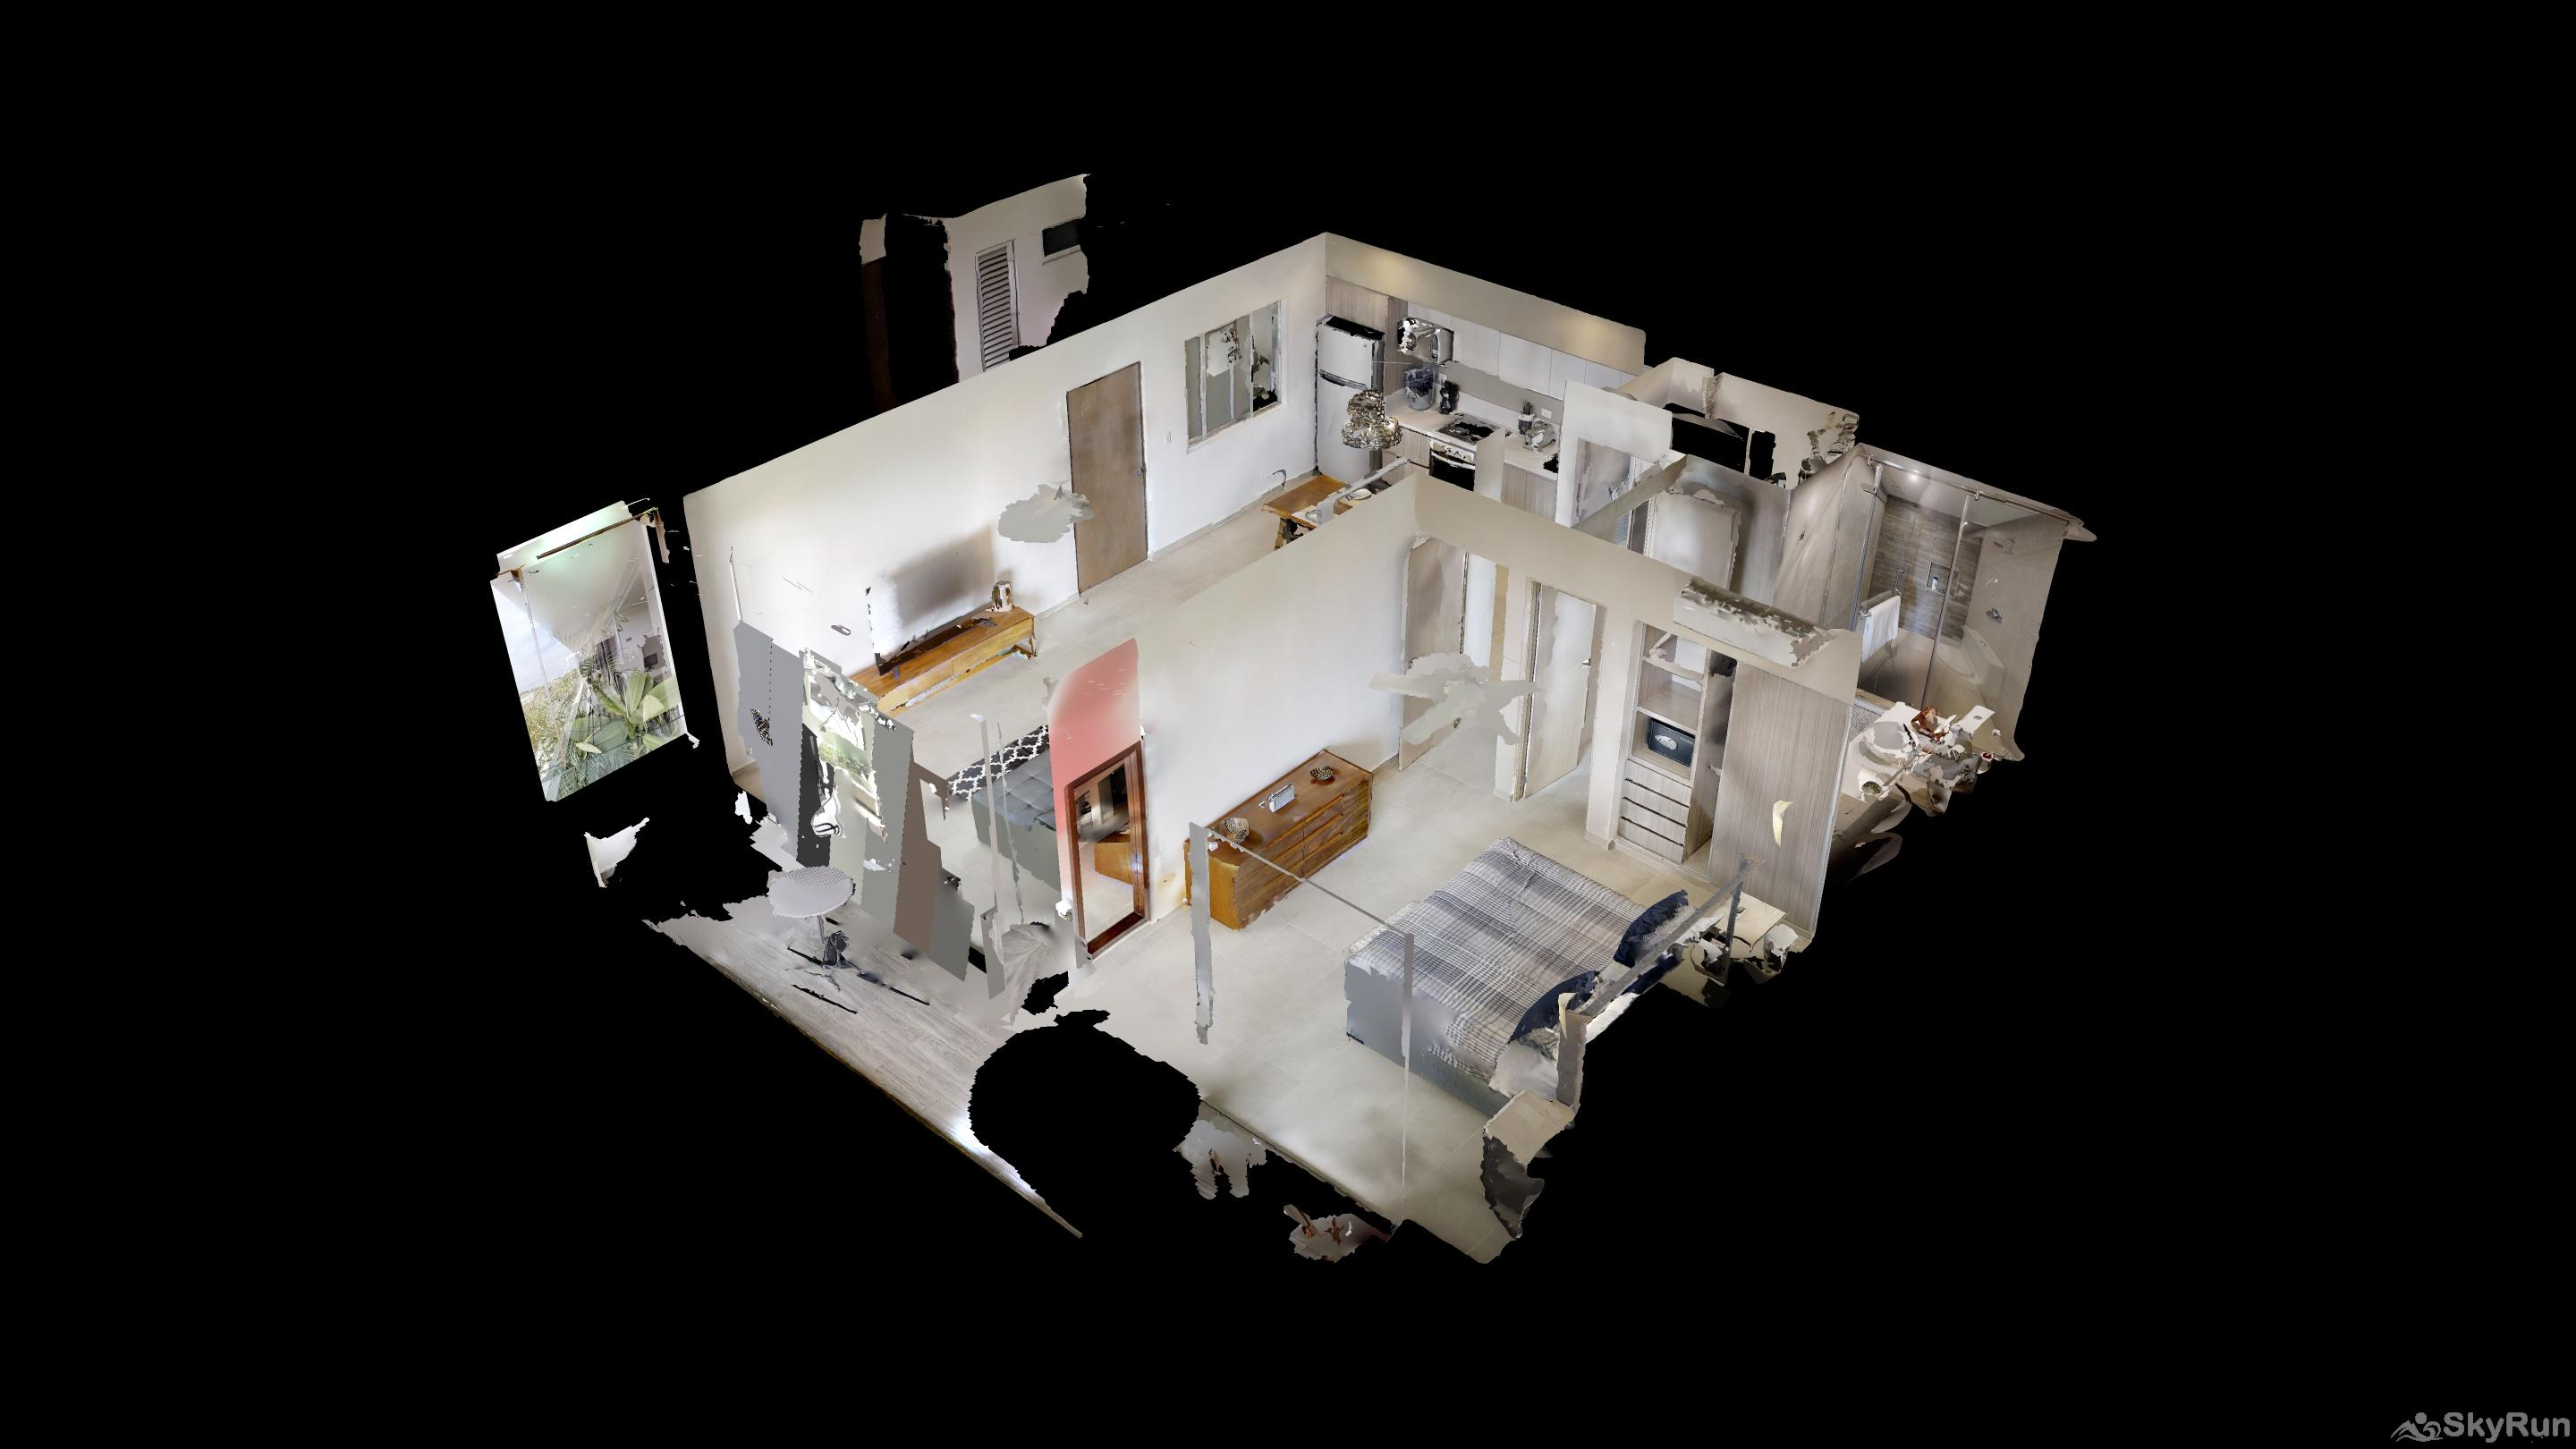 LUXURY RESIDENCE w Panoramic view 1BR 5star hotel amenities 3D Virtual Floor Plan